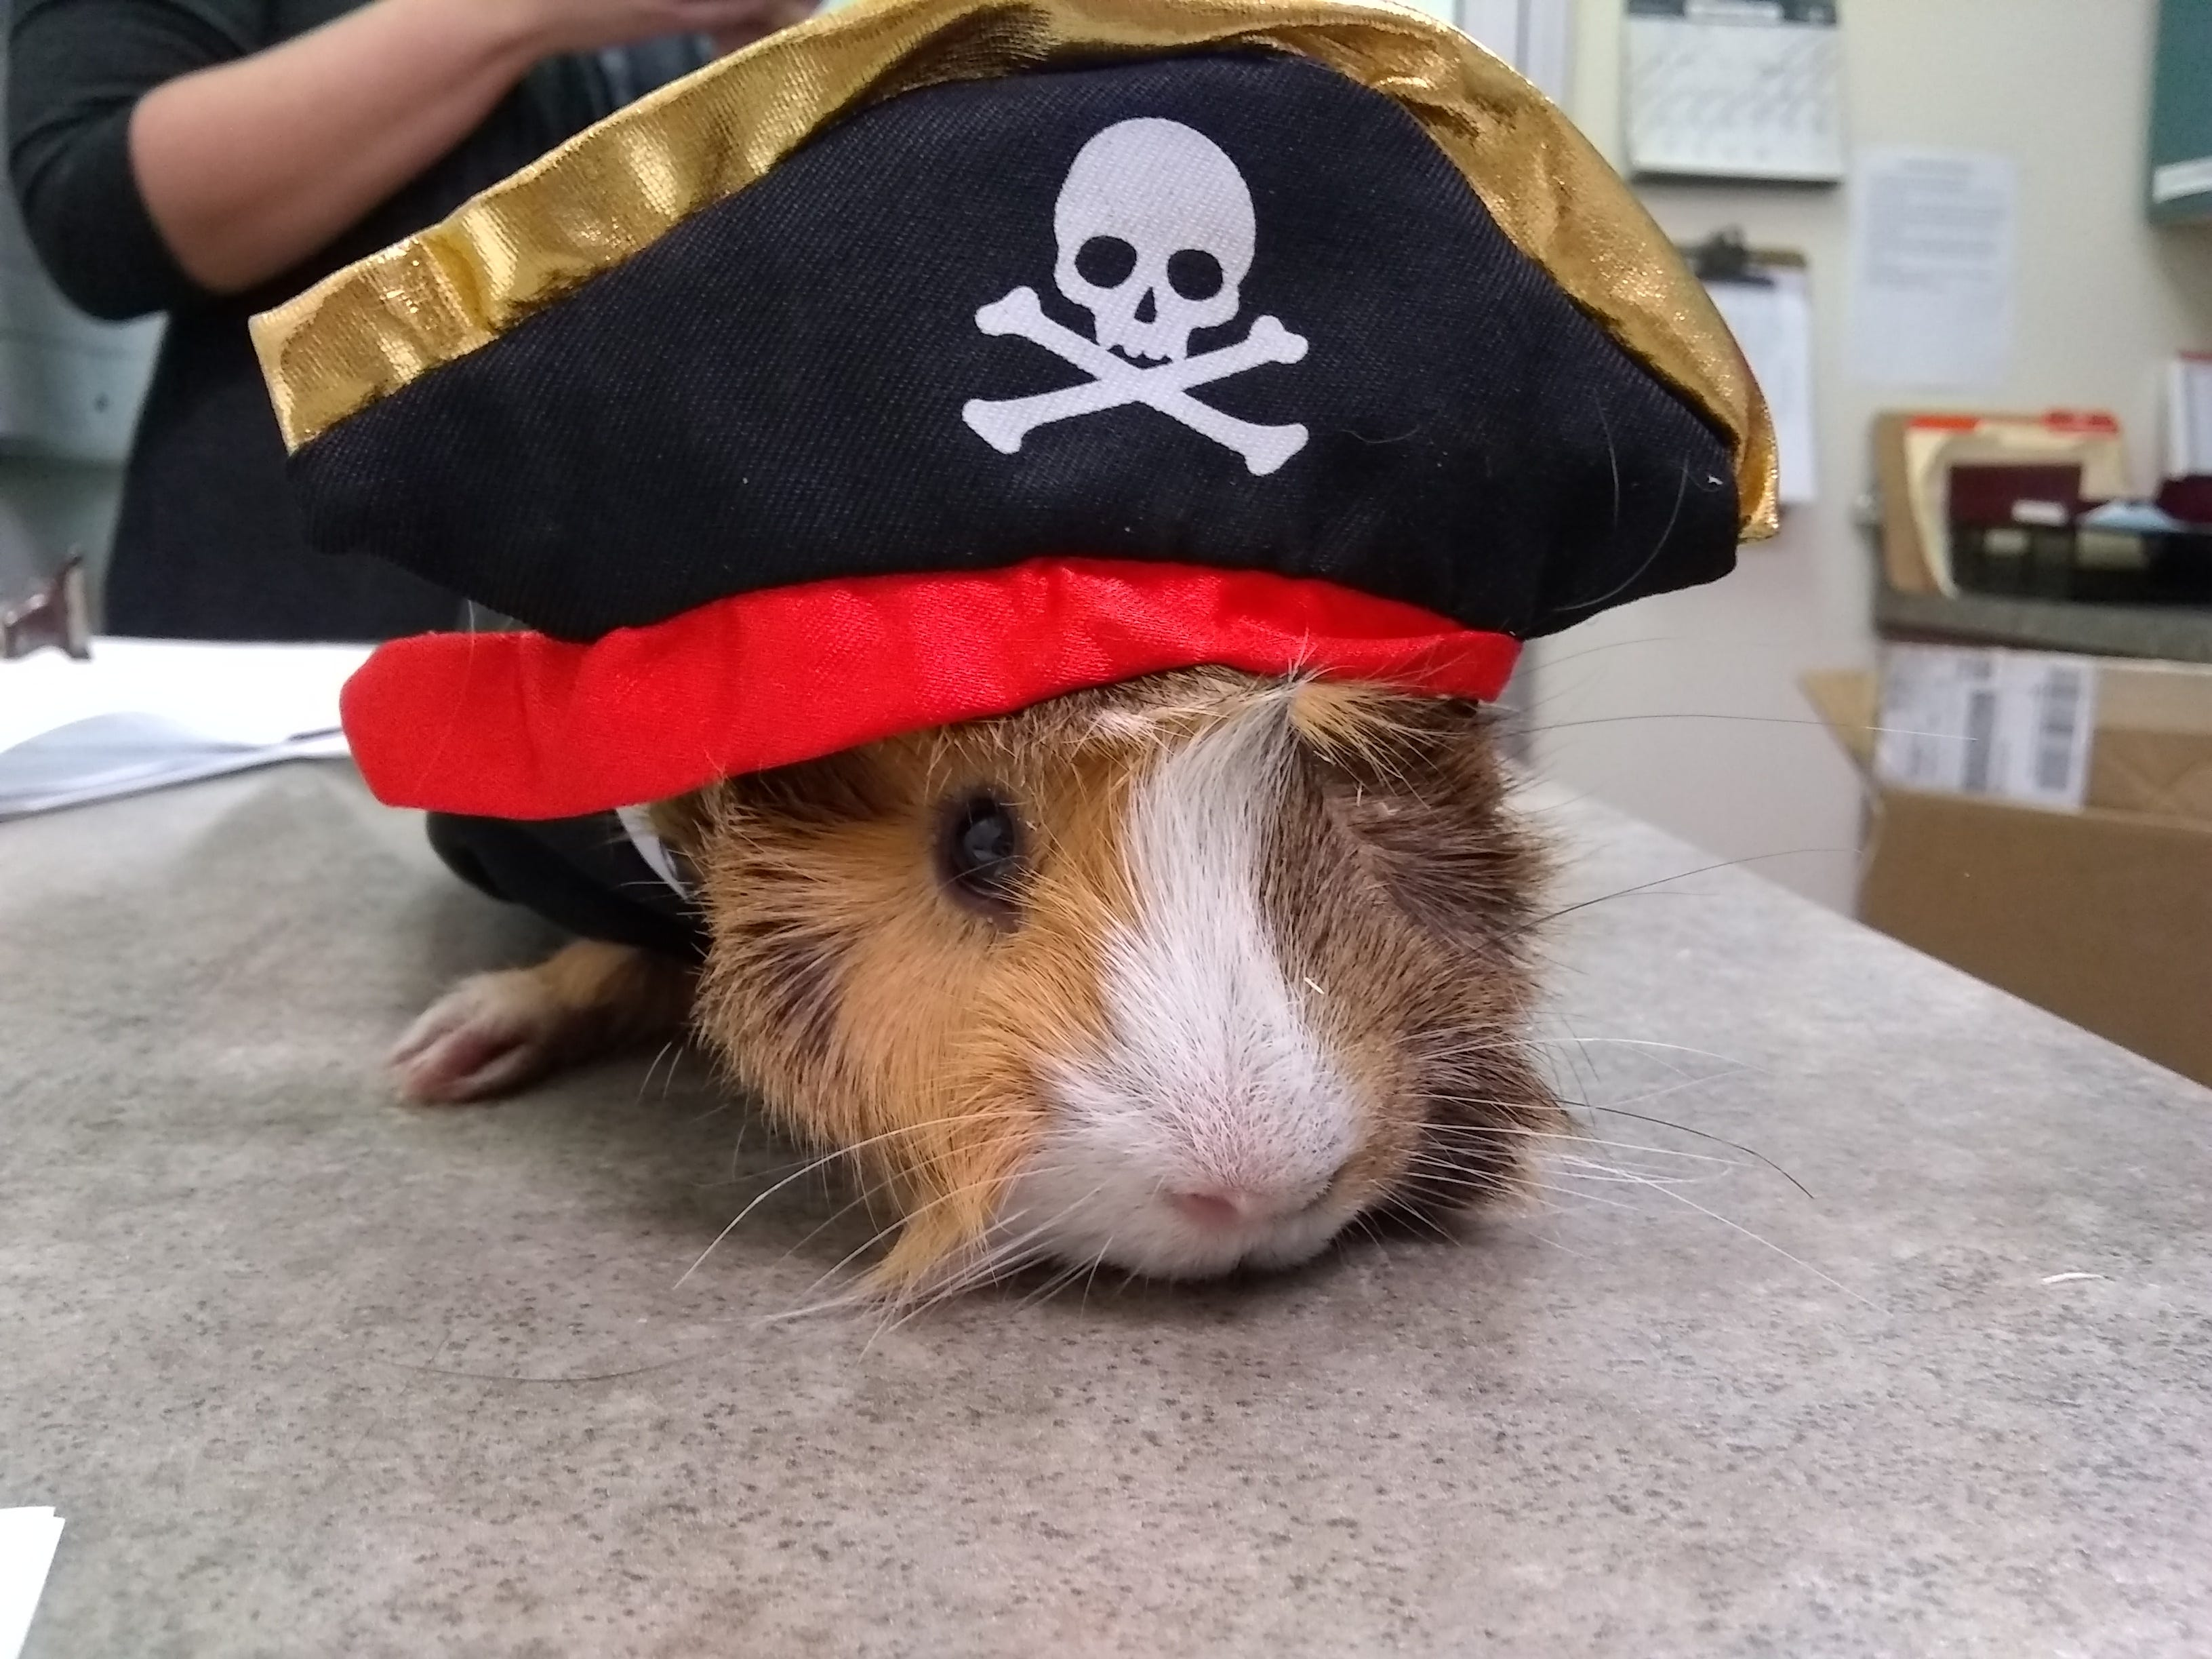 Joey Janella, a 9-month-old Guinea pig, is hoping to find a forever home with his brother, Chris Jericho.